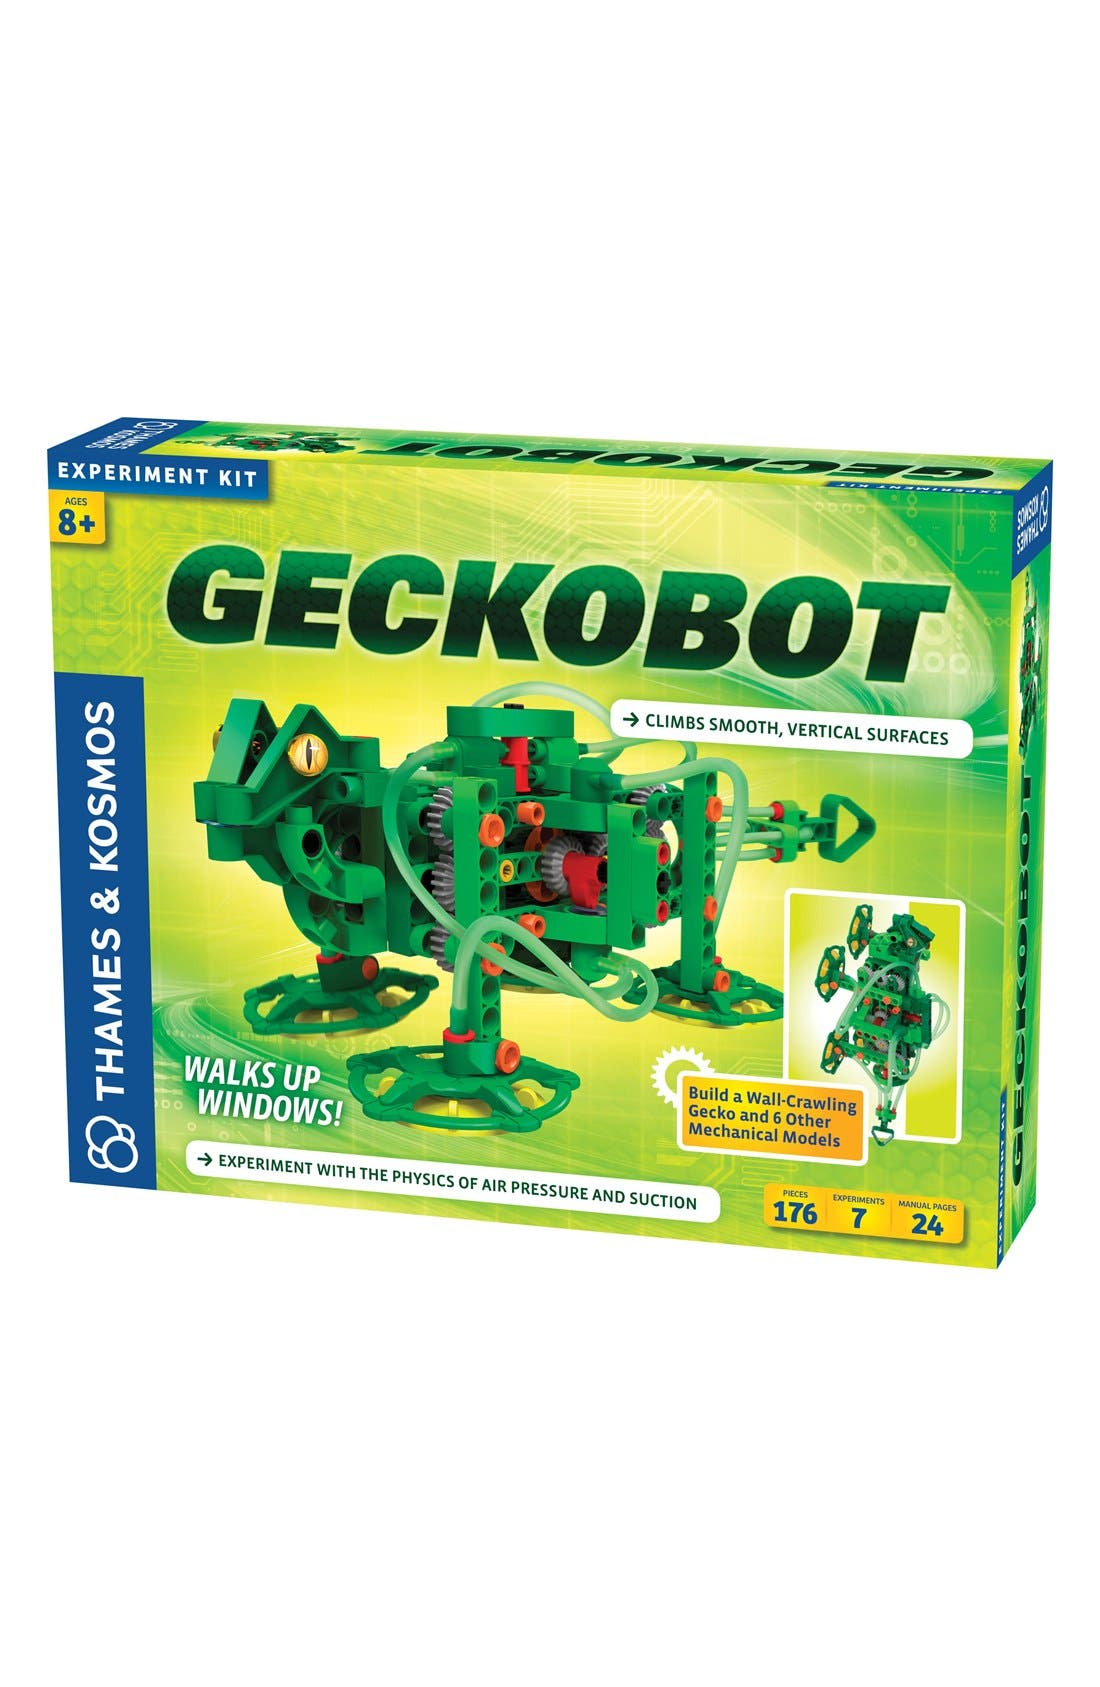 Alternate Image 1 Selected - Thames & Kosmos 'Geckobot' Robotics Experiment Kit